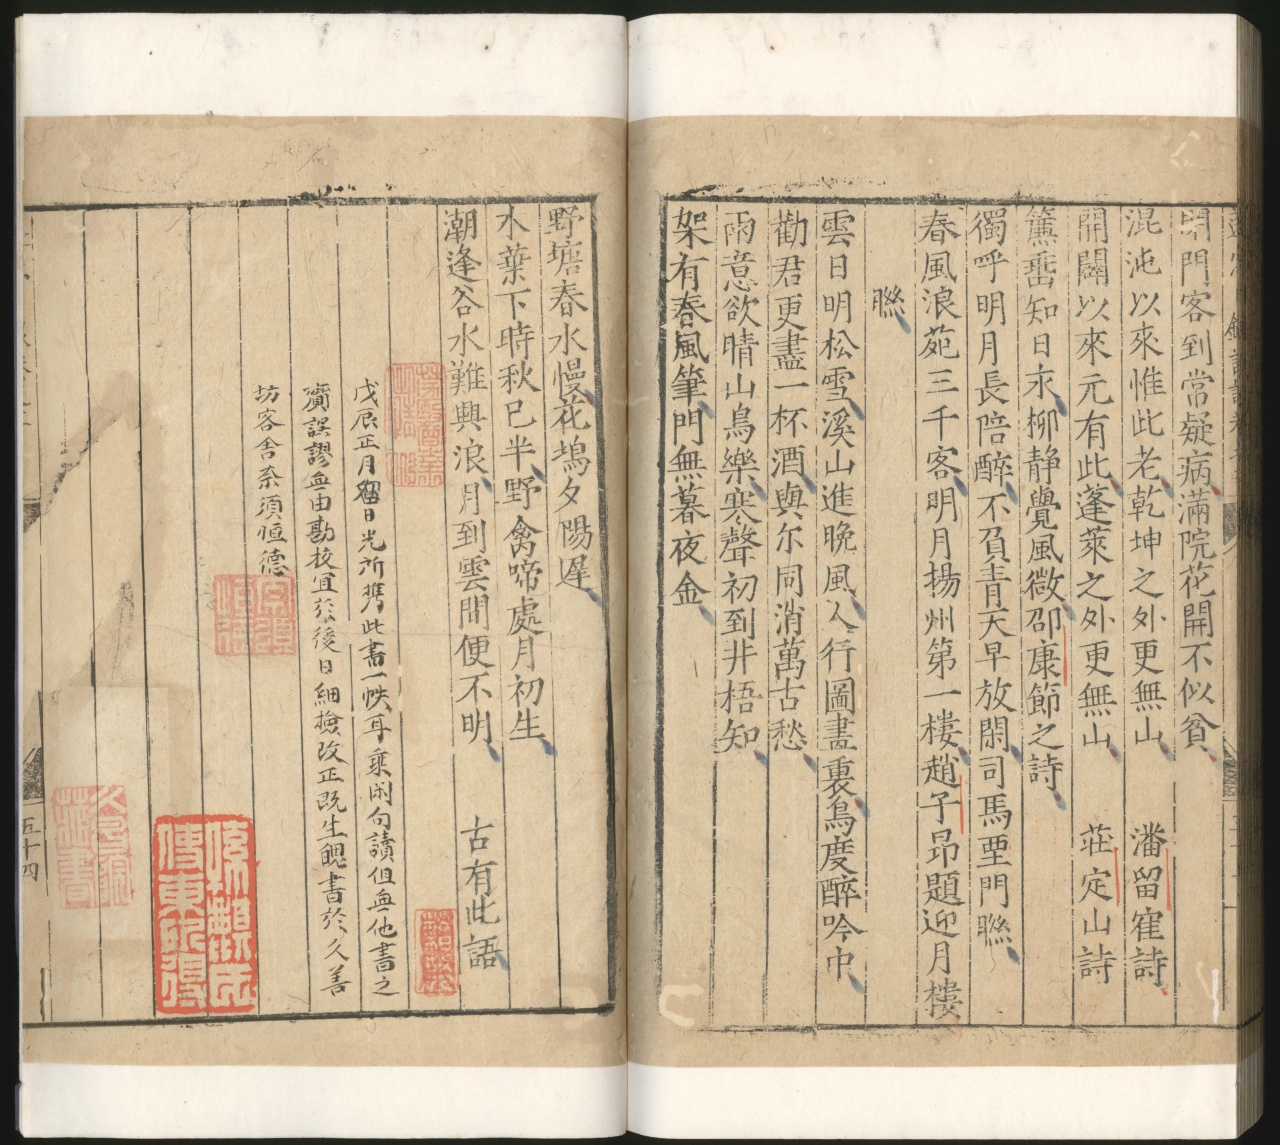 Peng Chuang Ri Lu with Handwritten Postscript by Nasu Tsunenori